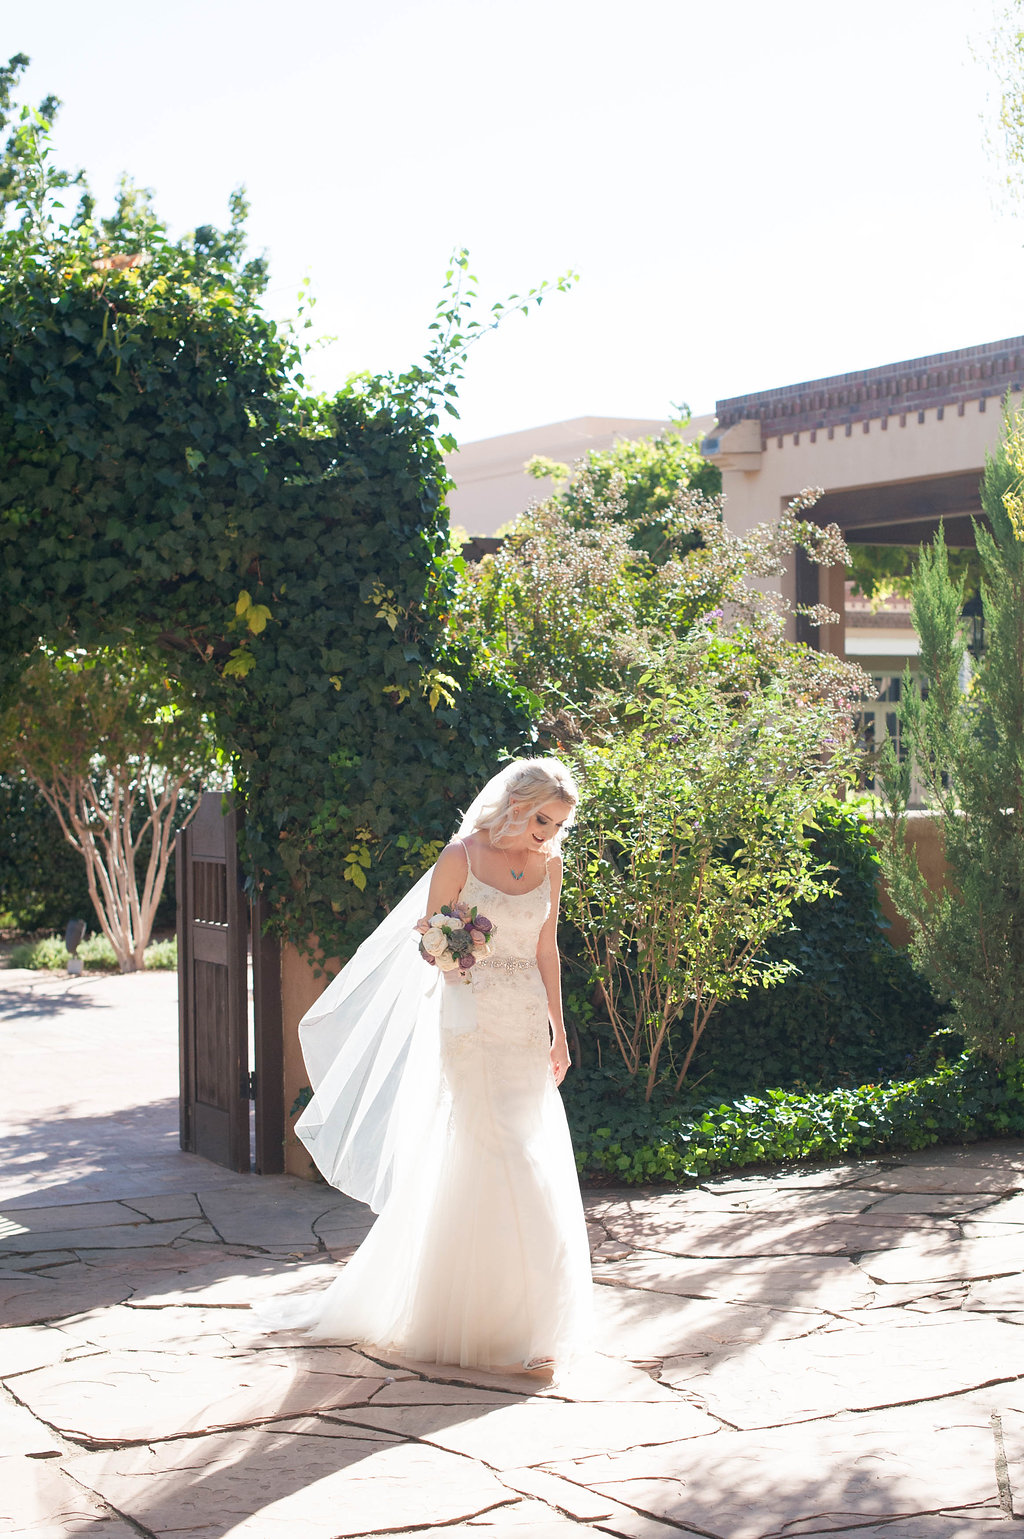 Perfect Wedding Guide New Mexico Albuquerque Santa Fe planning design inspo inspiration photography local marriage love engagement ceremony wedding gown outdoor natural light portrait bride couple veil sunshine